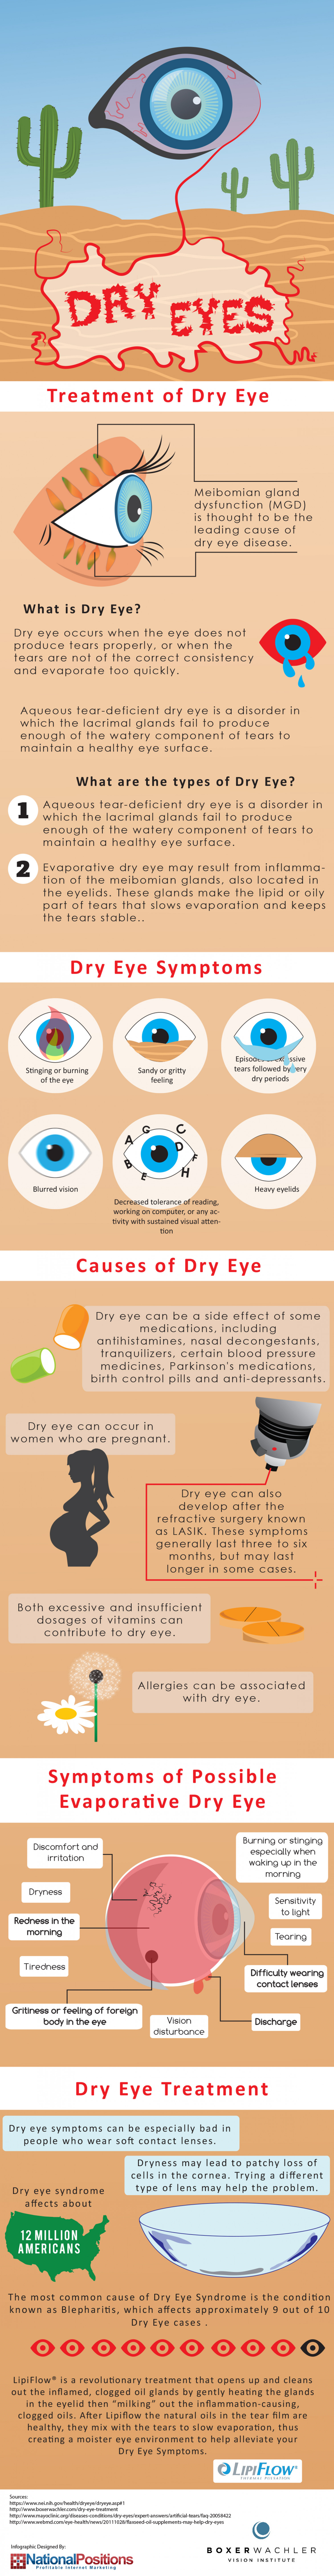 Treatment of Dry Eyes Infographic